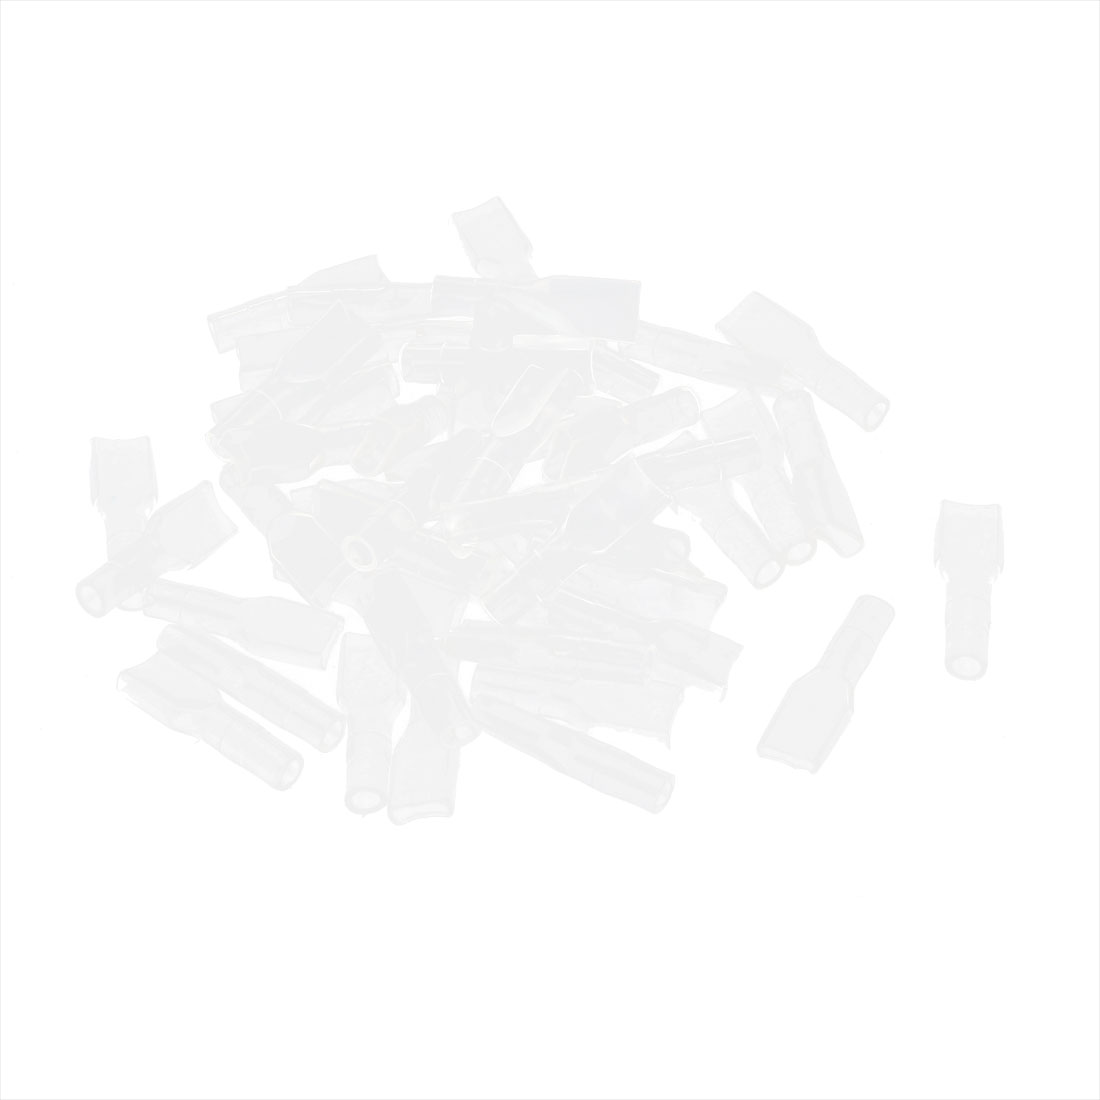 50 Pcs Car Clear 4.8mm PVC Crimp Terminal End Insulated Cover Sleeves